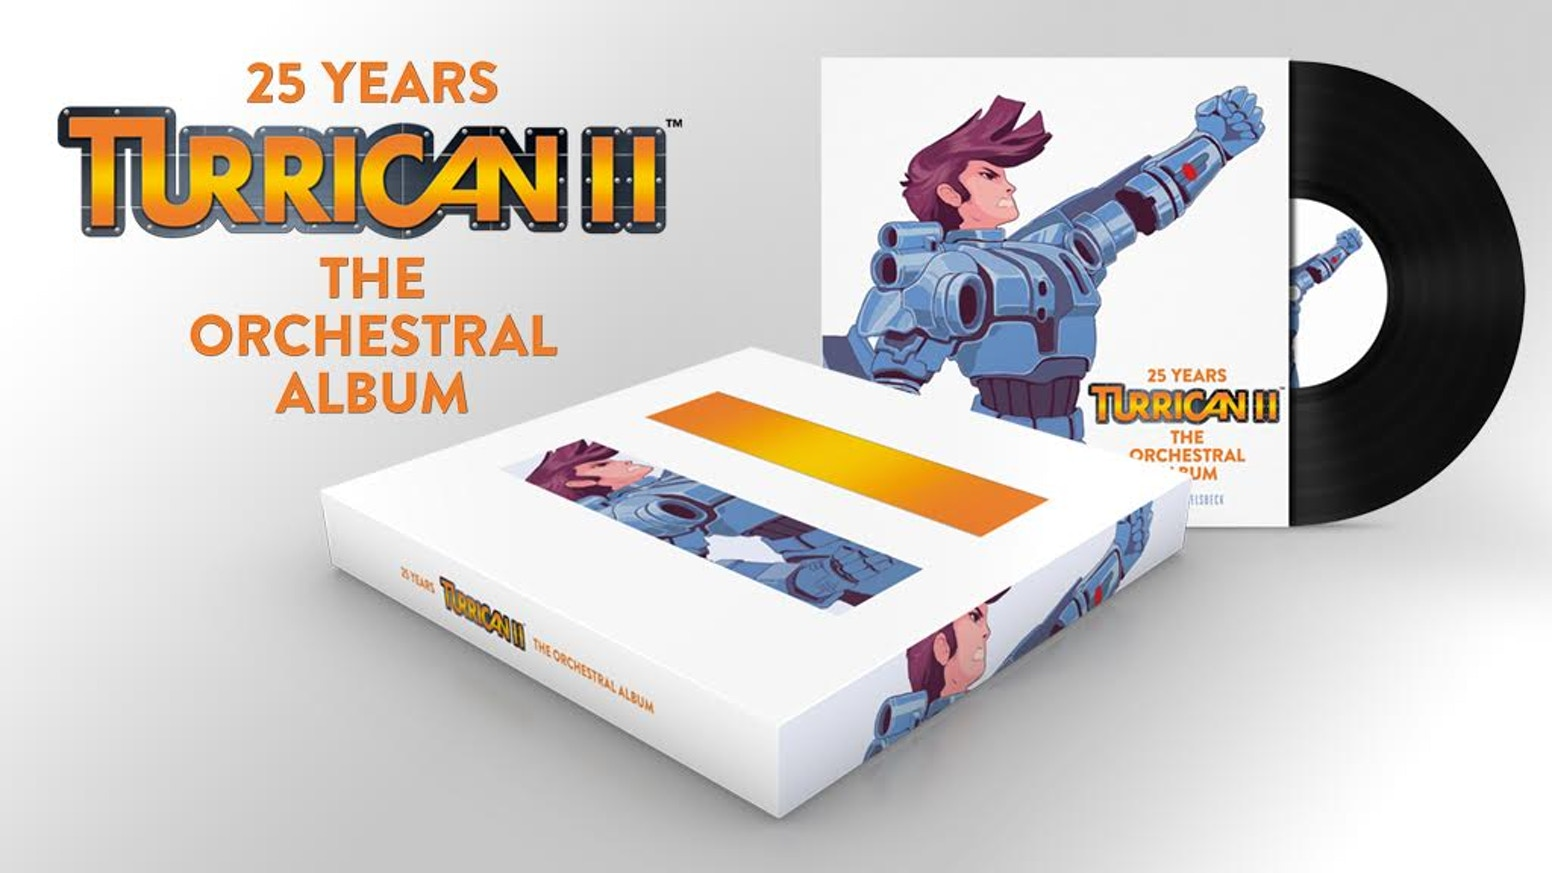 Turrican II Live Orchestra Album by Chris Huelsbeck by Chris